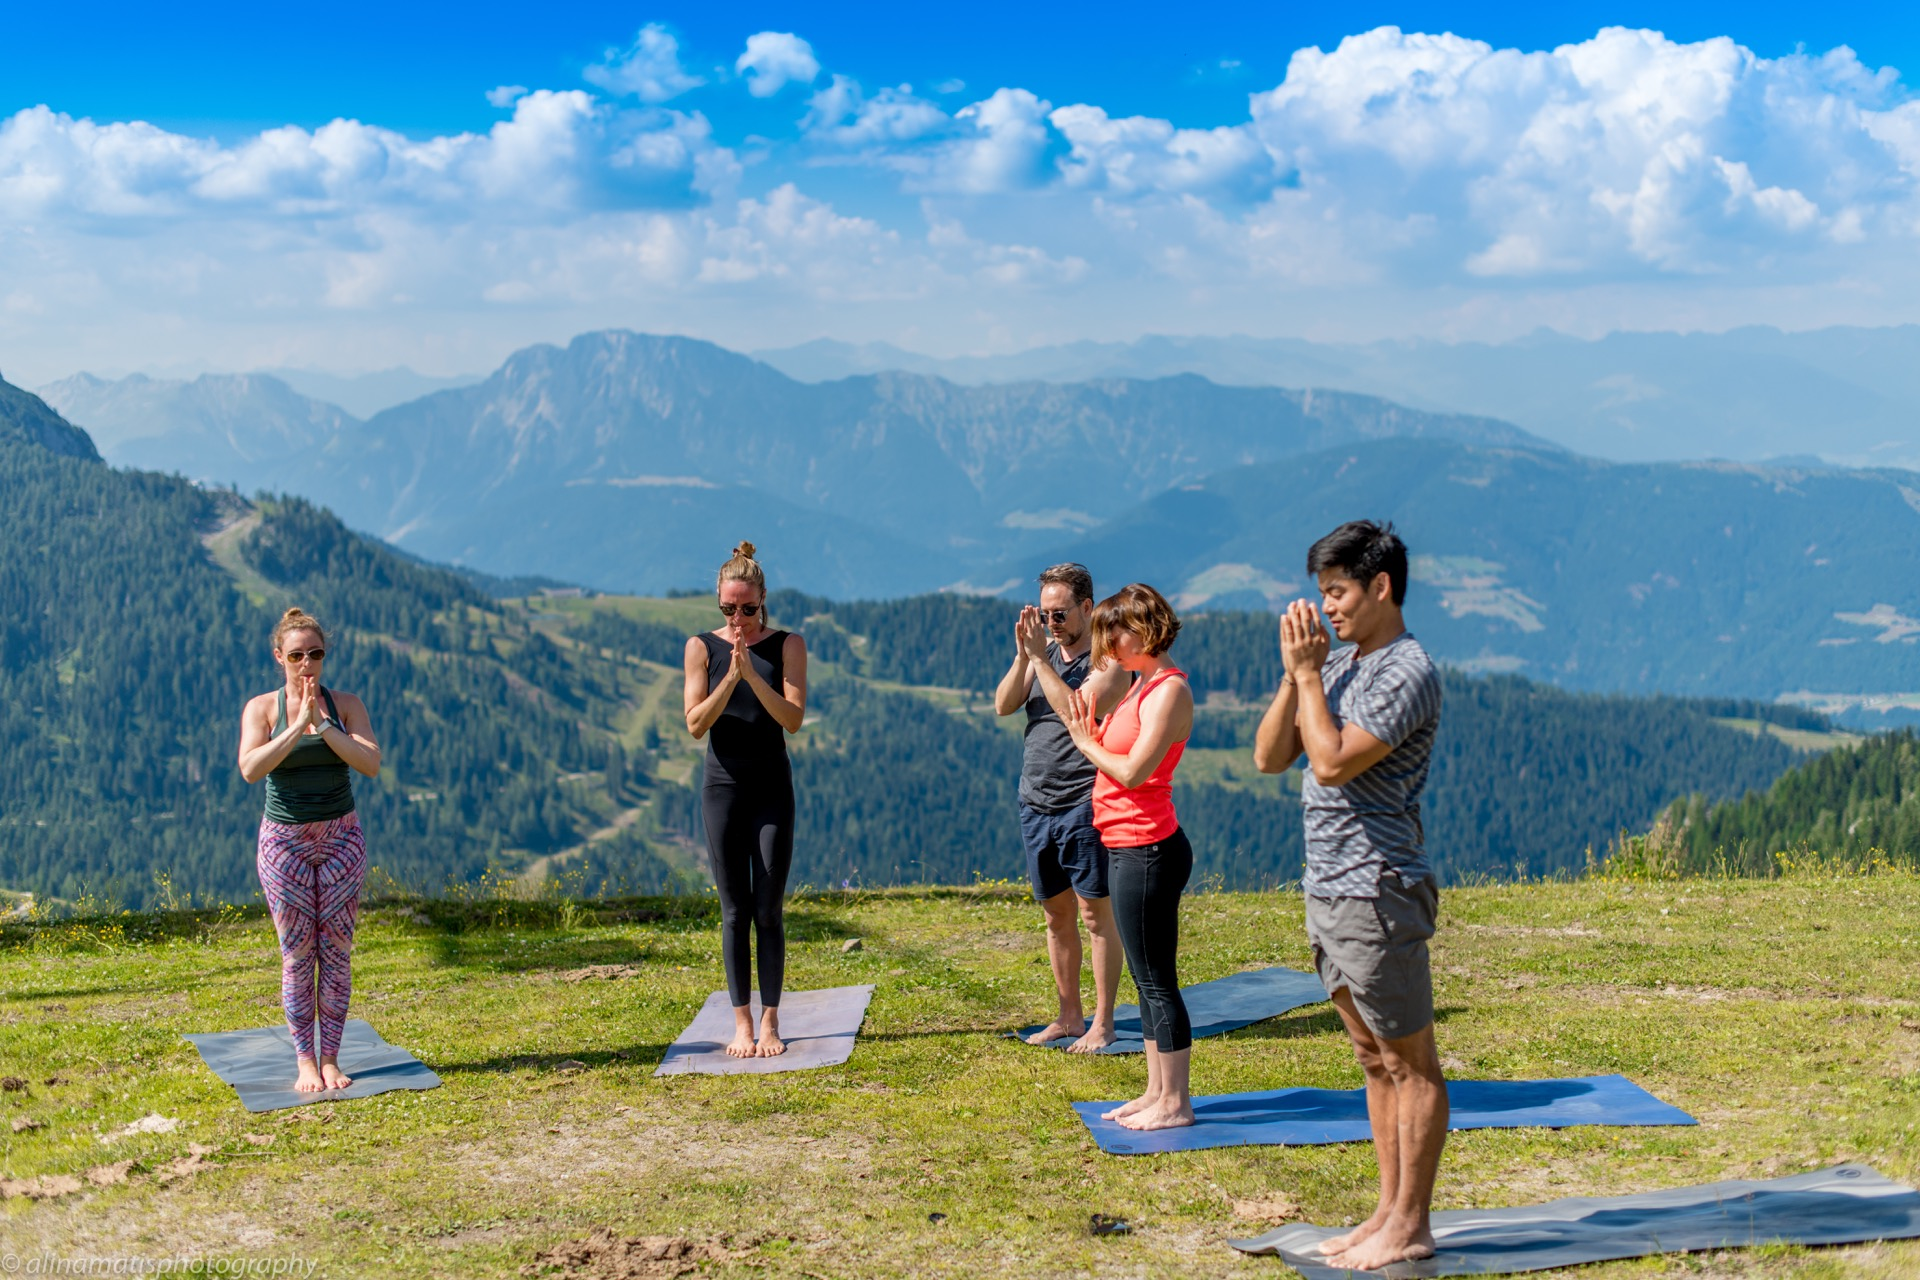 Hie-Kim-Friends-2018-Yoga-Retreat-Alina-Matis-Photography-003 - Hie Kim Yoga - Yoga Retreat - Yoga Workshops und Reisen